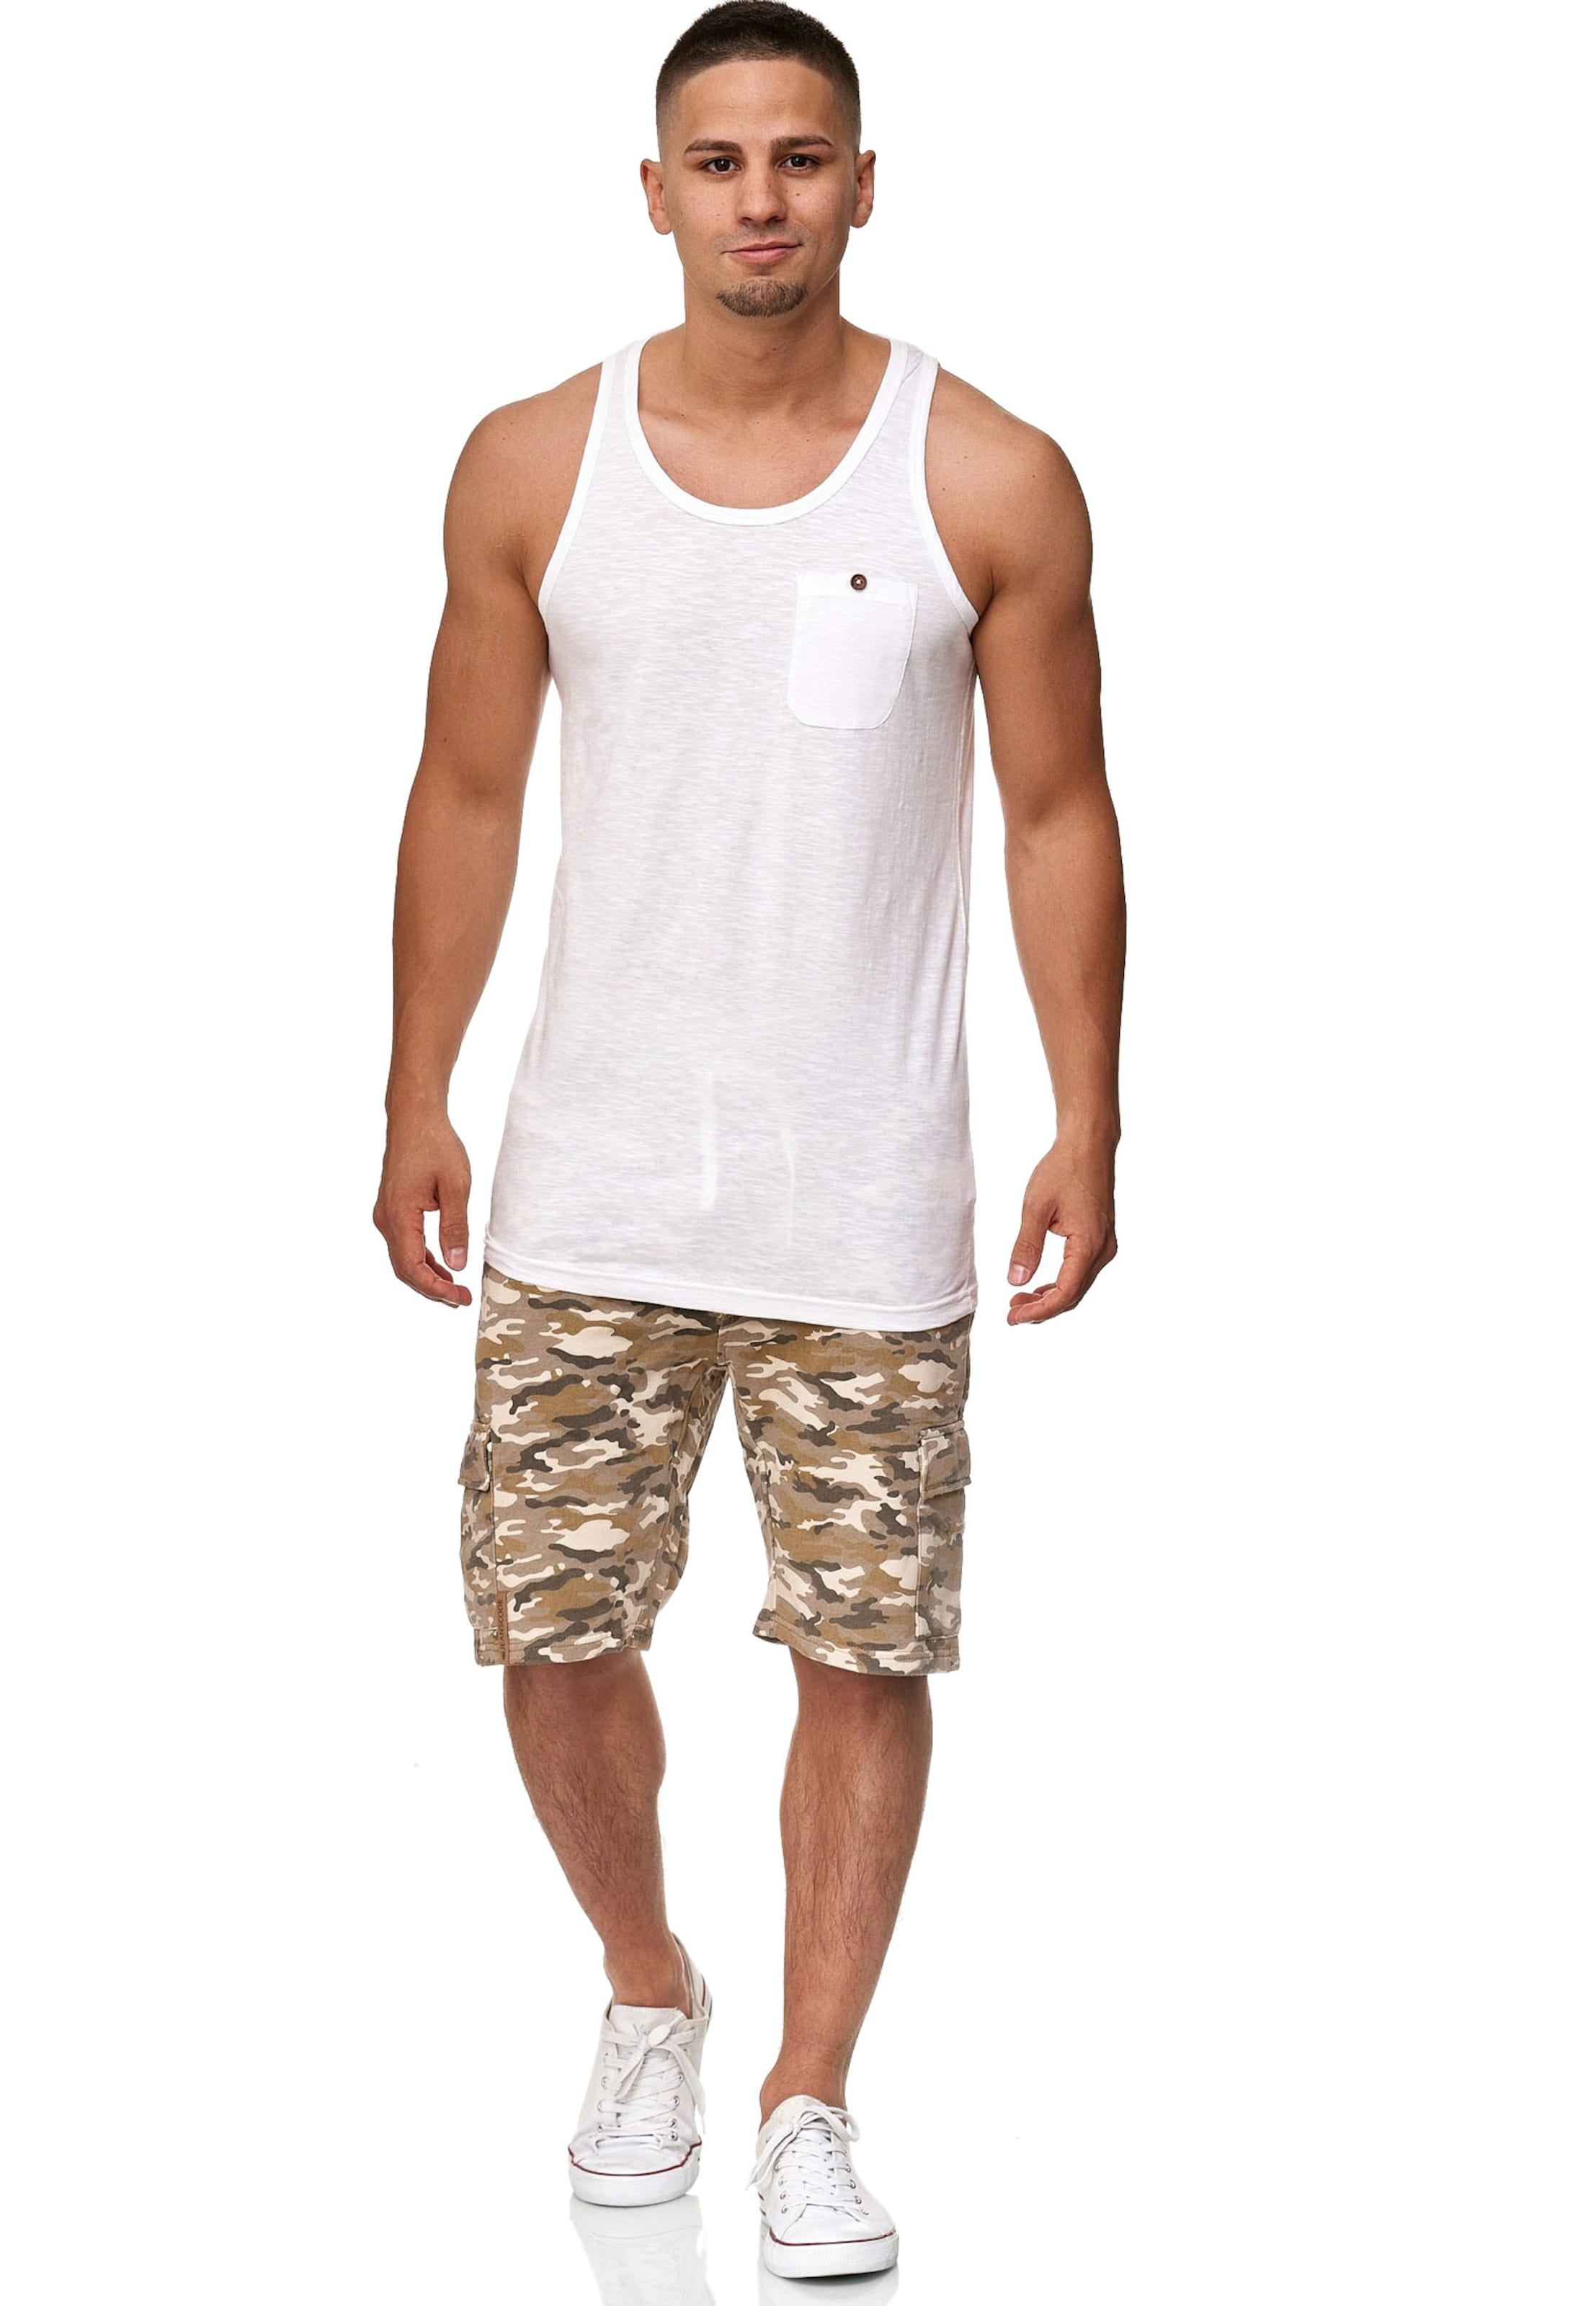 Shorts Rock' Sand Indicode 'white Jeans In H2IDWE9Y